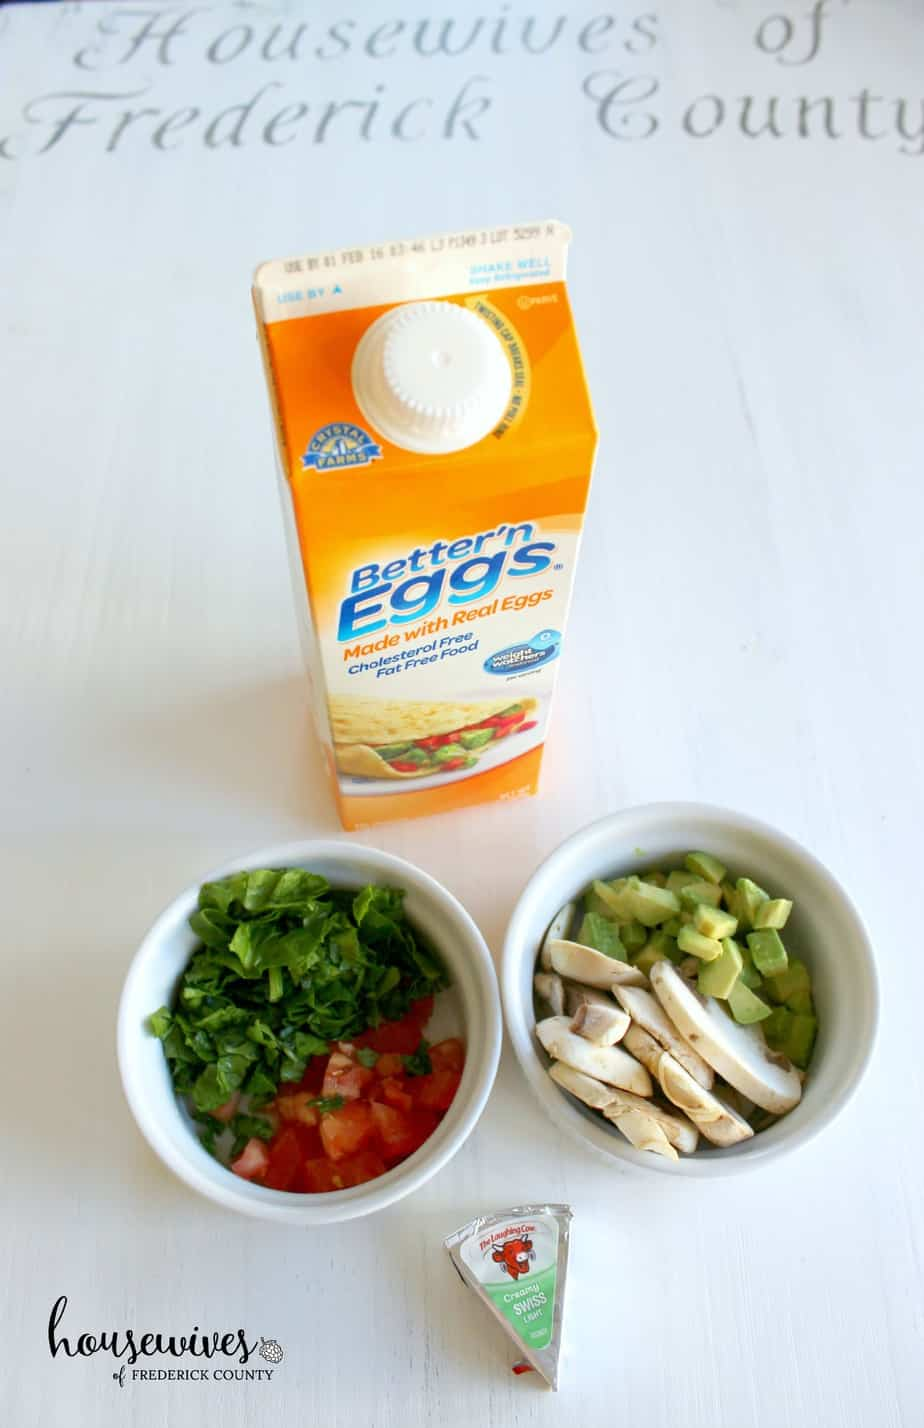 Eggs in a cup recipe ingredients